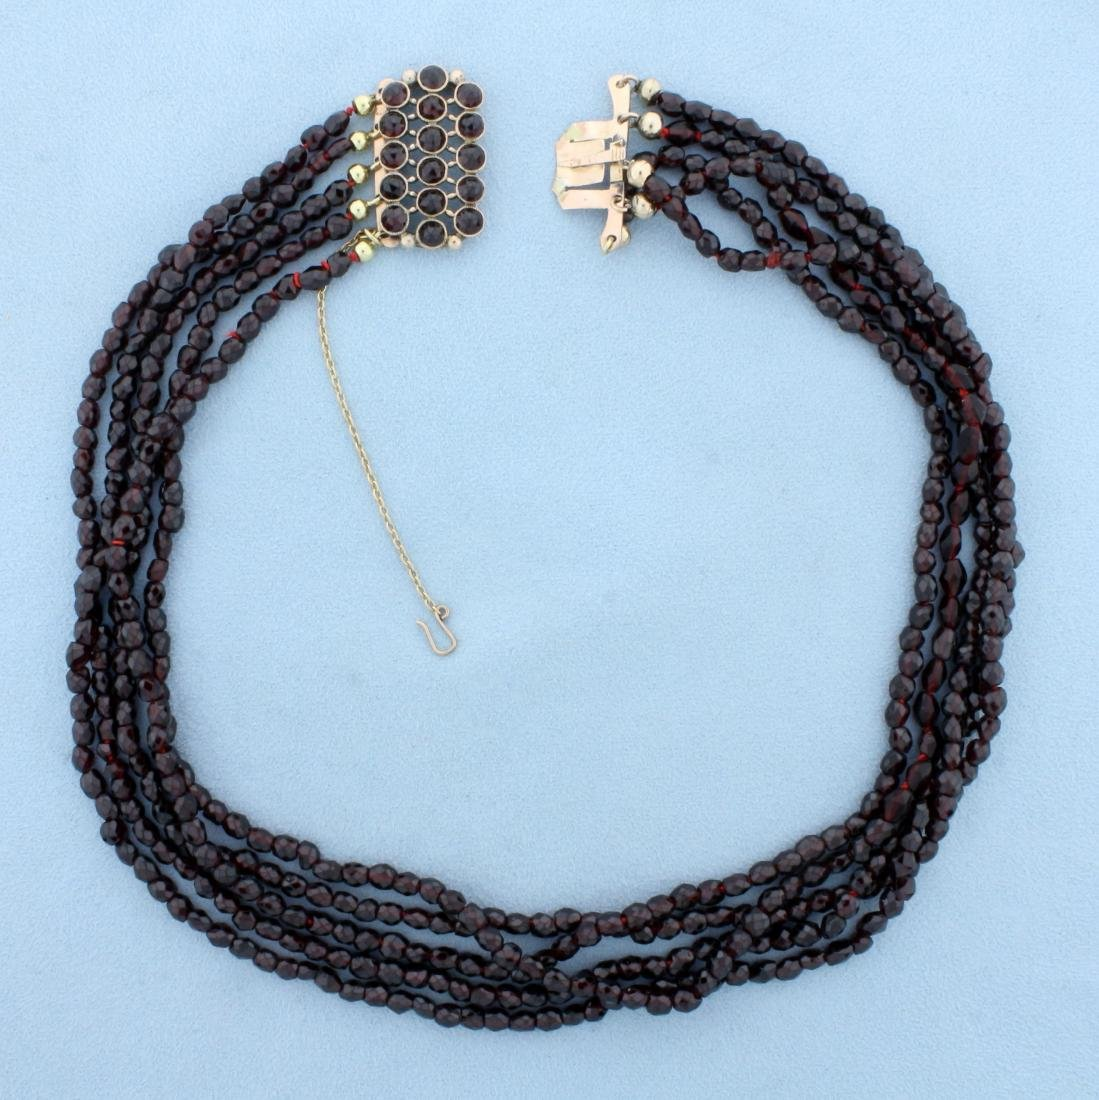 Antique Victorian Five-Strand Crystal Bead Necklace